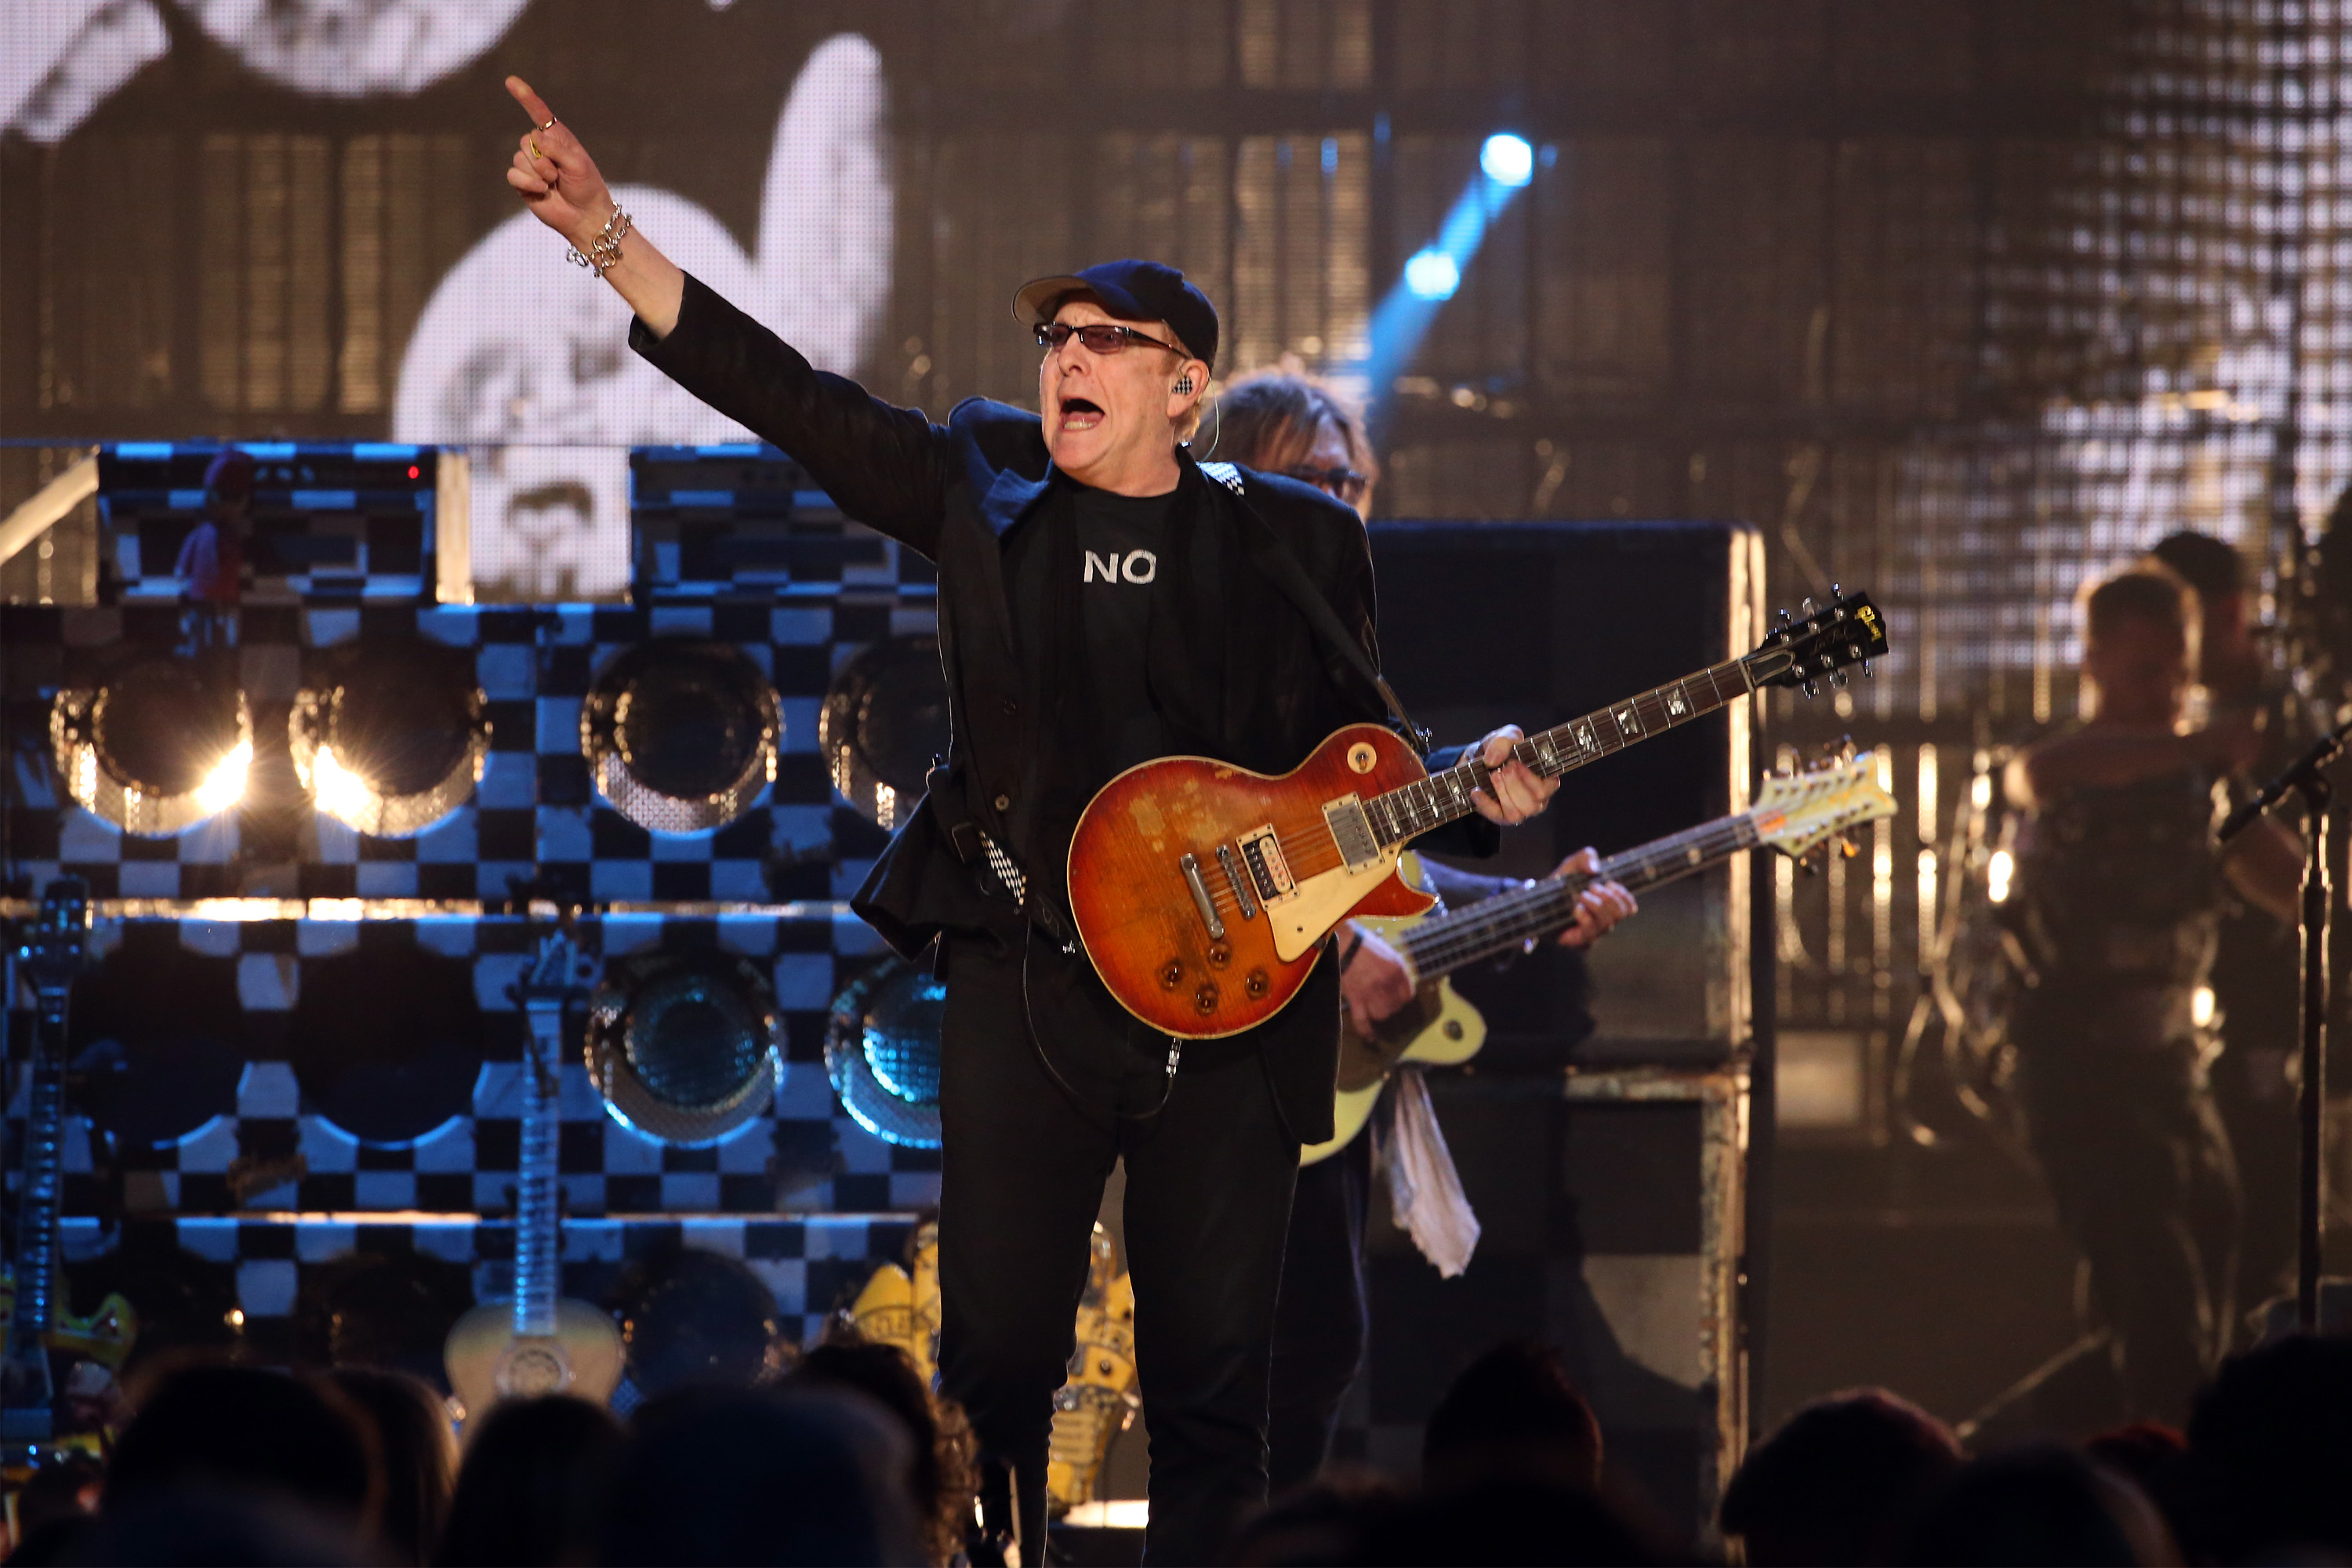 """NEW YORK, NEW YORK - APRIL 08: Rick Nielsen of Cheap Trick performs onstage at the 31st Annual Rock And Roll Hall Of Fame Induction Ceremony at Barclays Center of Brooklyn on April 8, 2016 in New York City. (Photo by Kevin Kane/WireImage for Rock and Roll Hall of Fame)"""